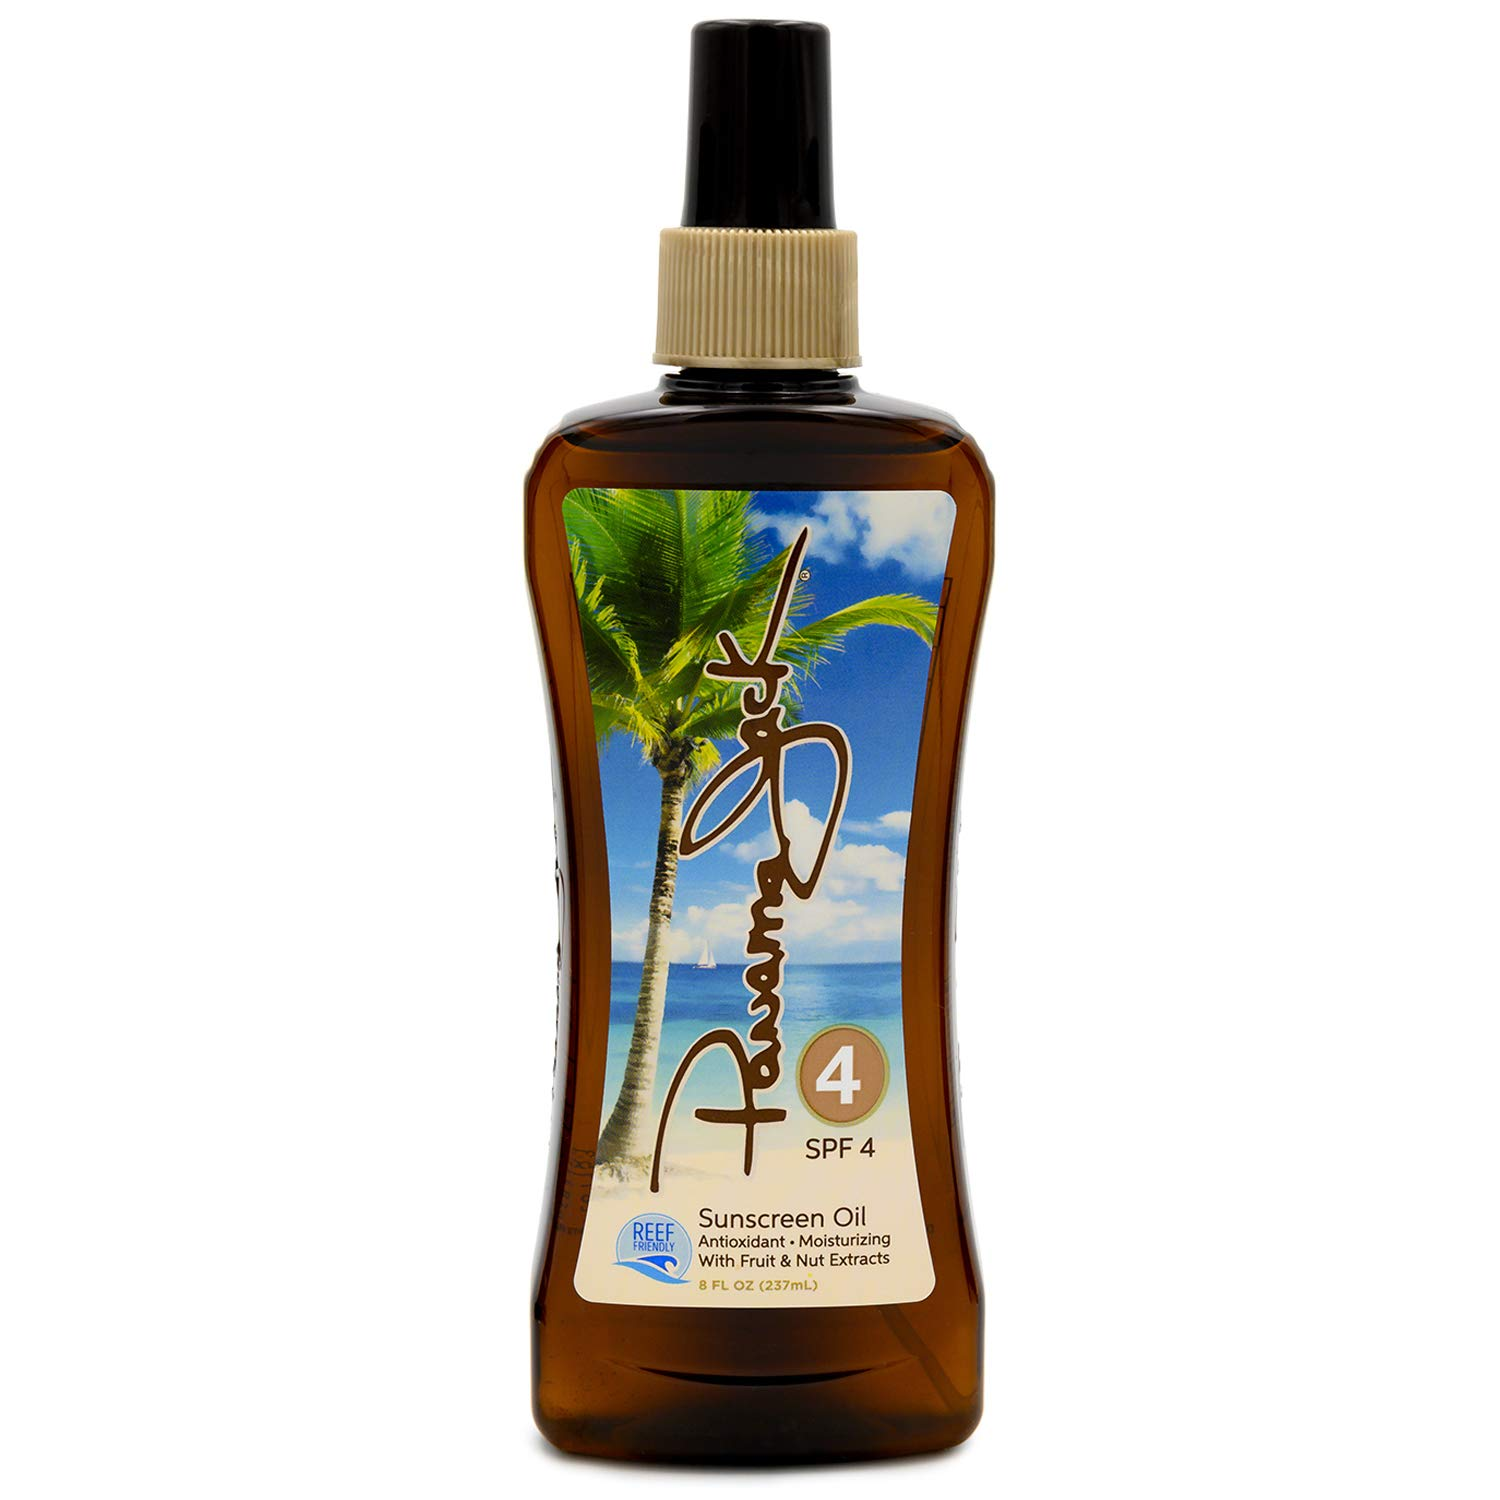 Panama Jack Sunscreen Tanning Oil - SPF 4, Reef Friendly, PABA, Paraben, Gluten & Cruelty Free, Antioxidant Formula with Exotic Oils and Fruit & Nut Extracts, 8 FL OZ (Pack of 2)